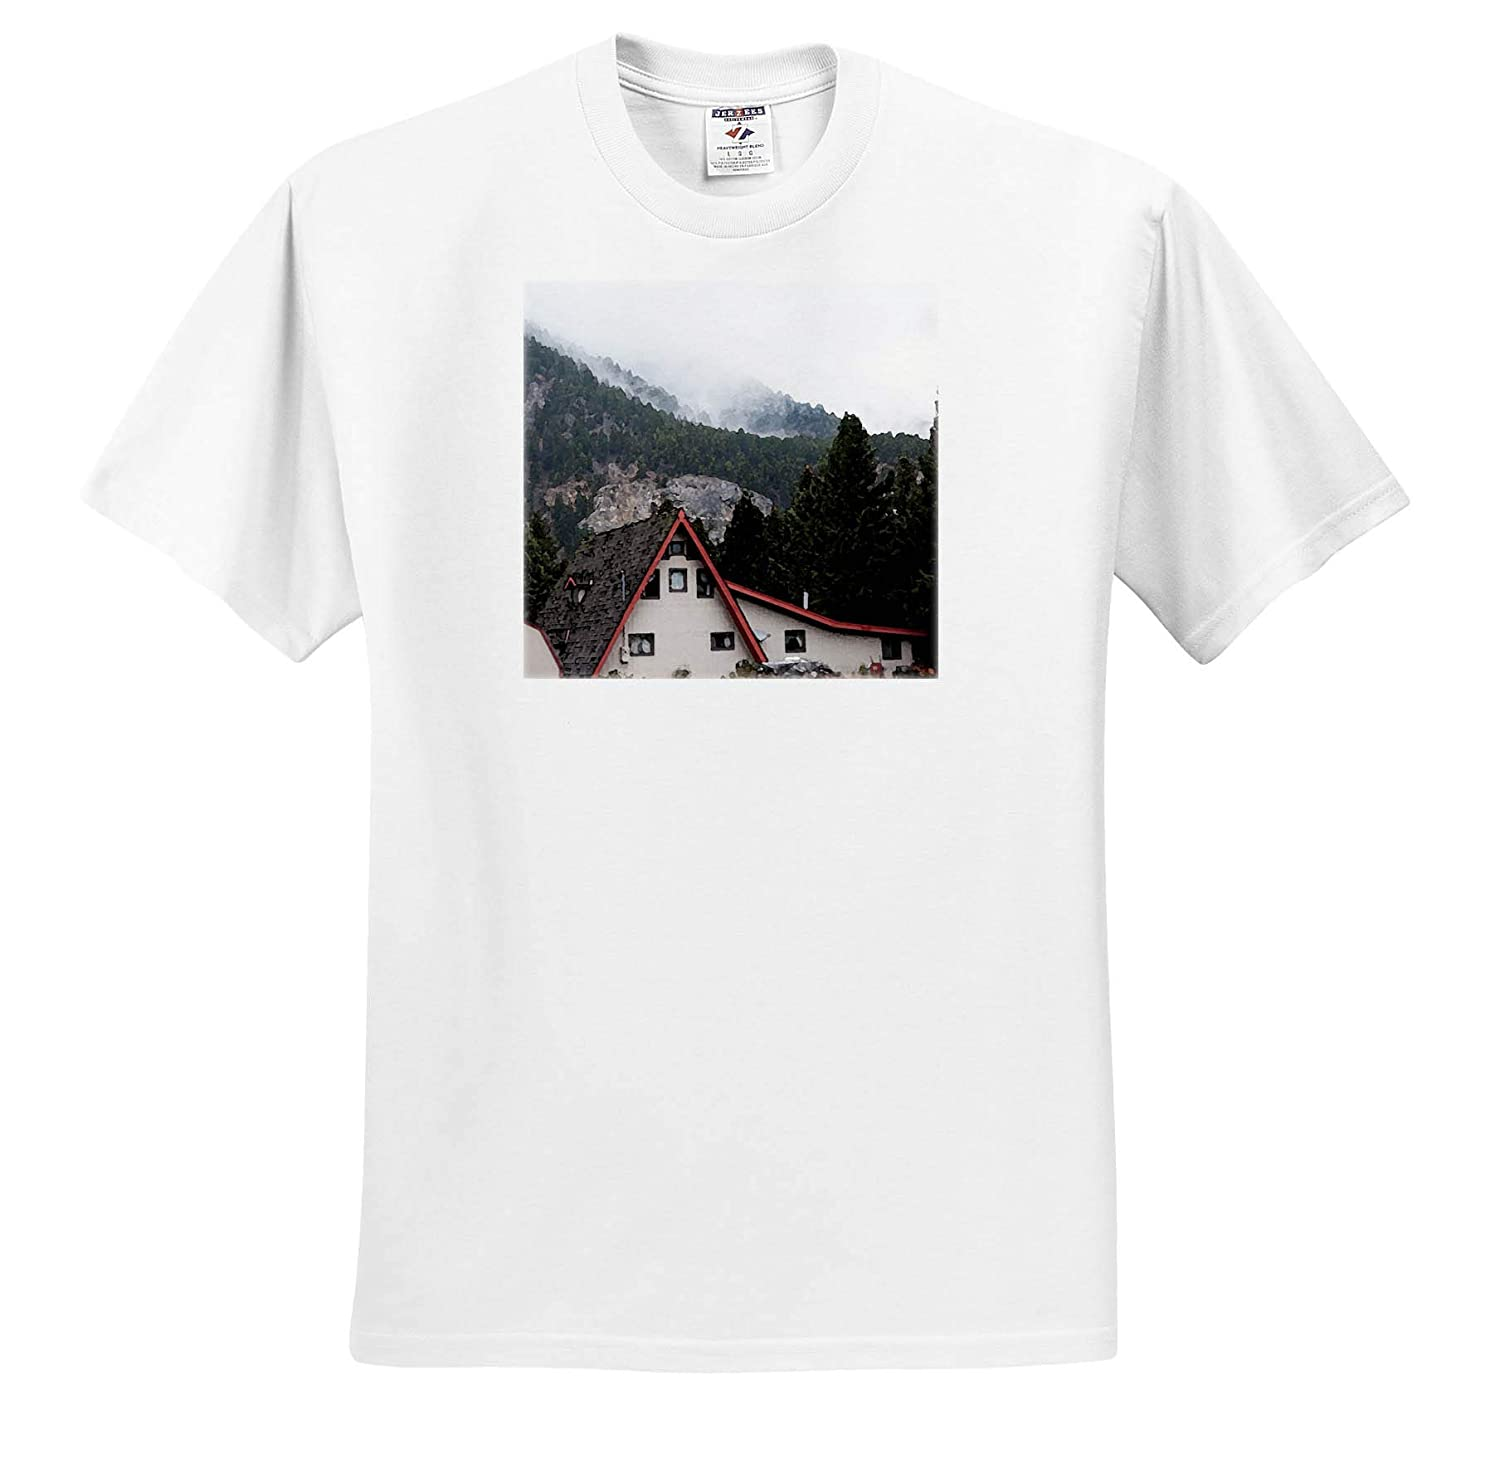 A Cabin Lined in red in Wyoming on a Misty Day by Mountains Adult T-Shirt XL ts/_320071 3dRose Jos Fauxtographee- Cabin